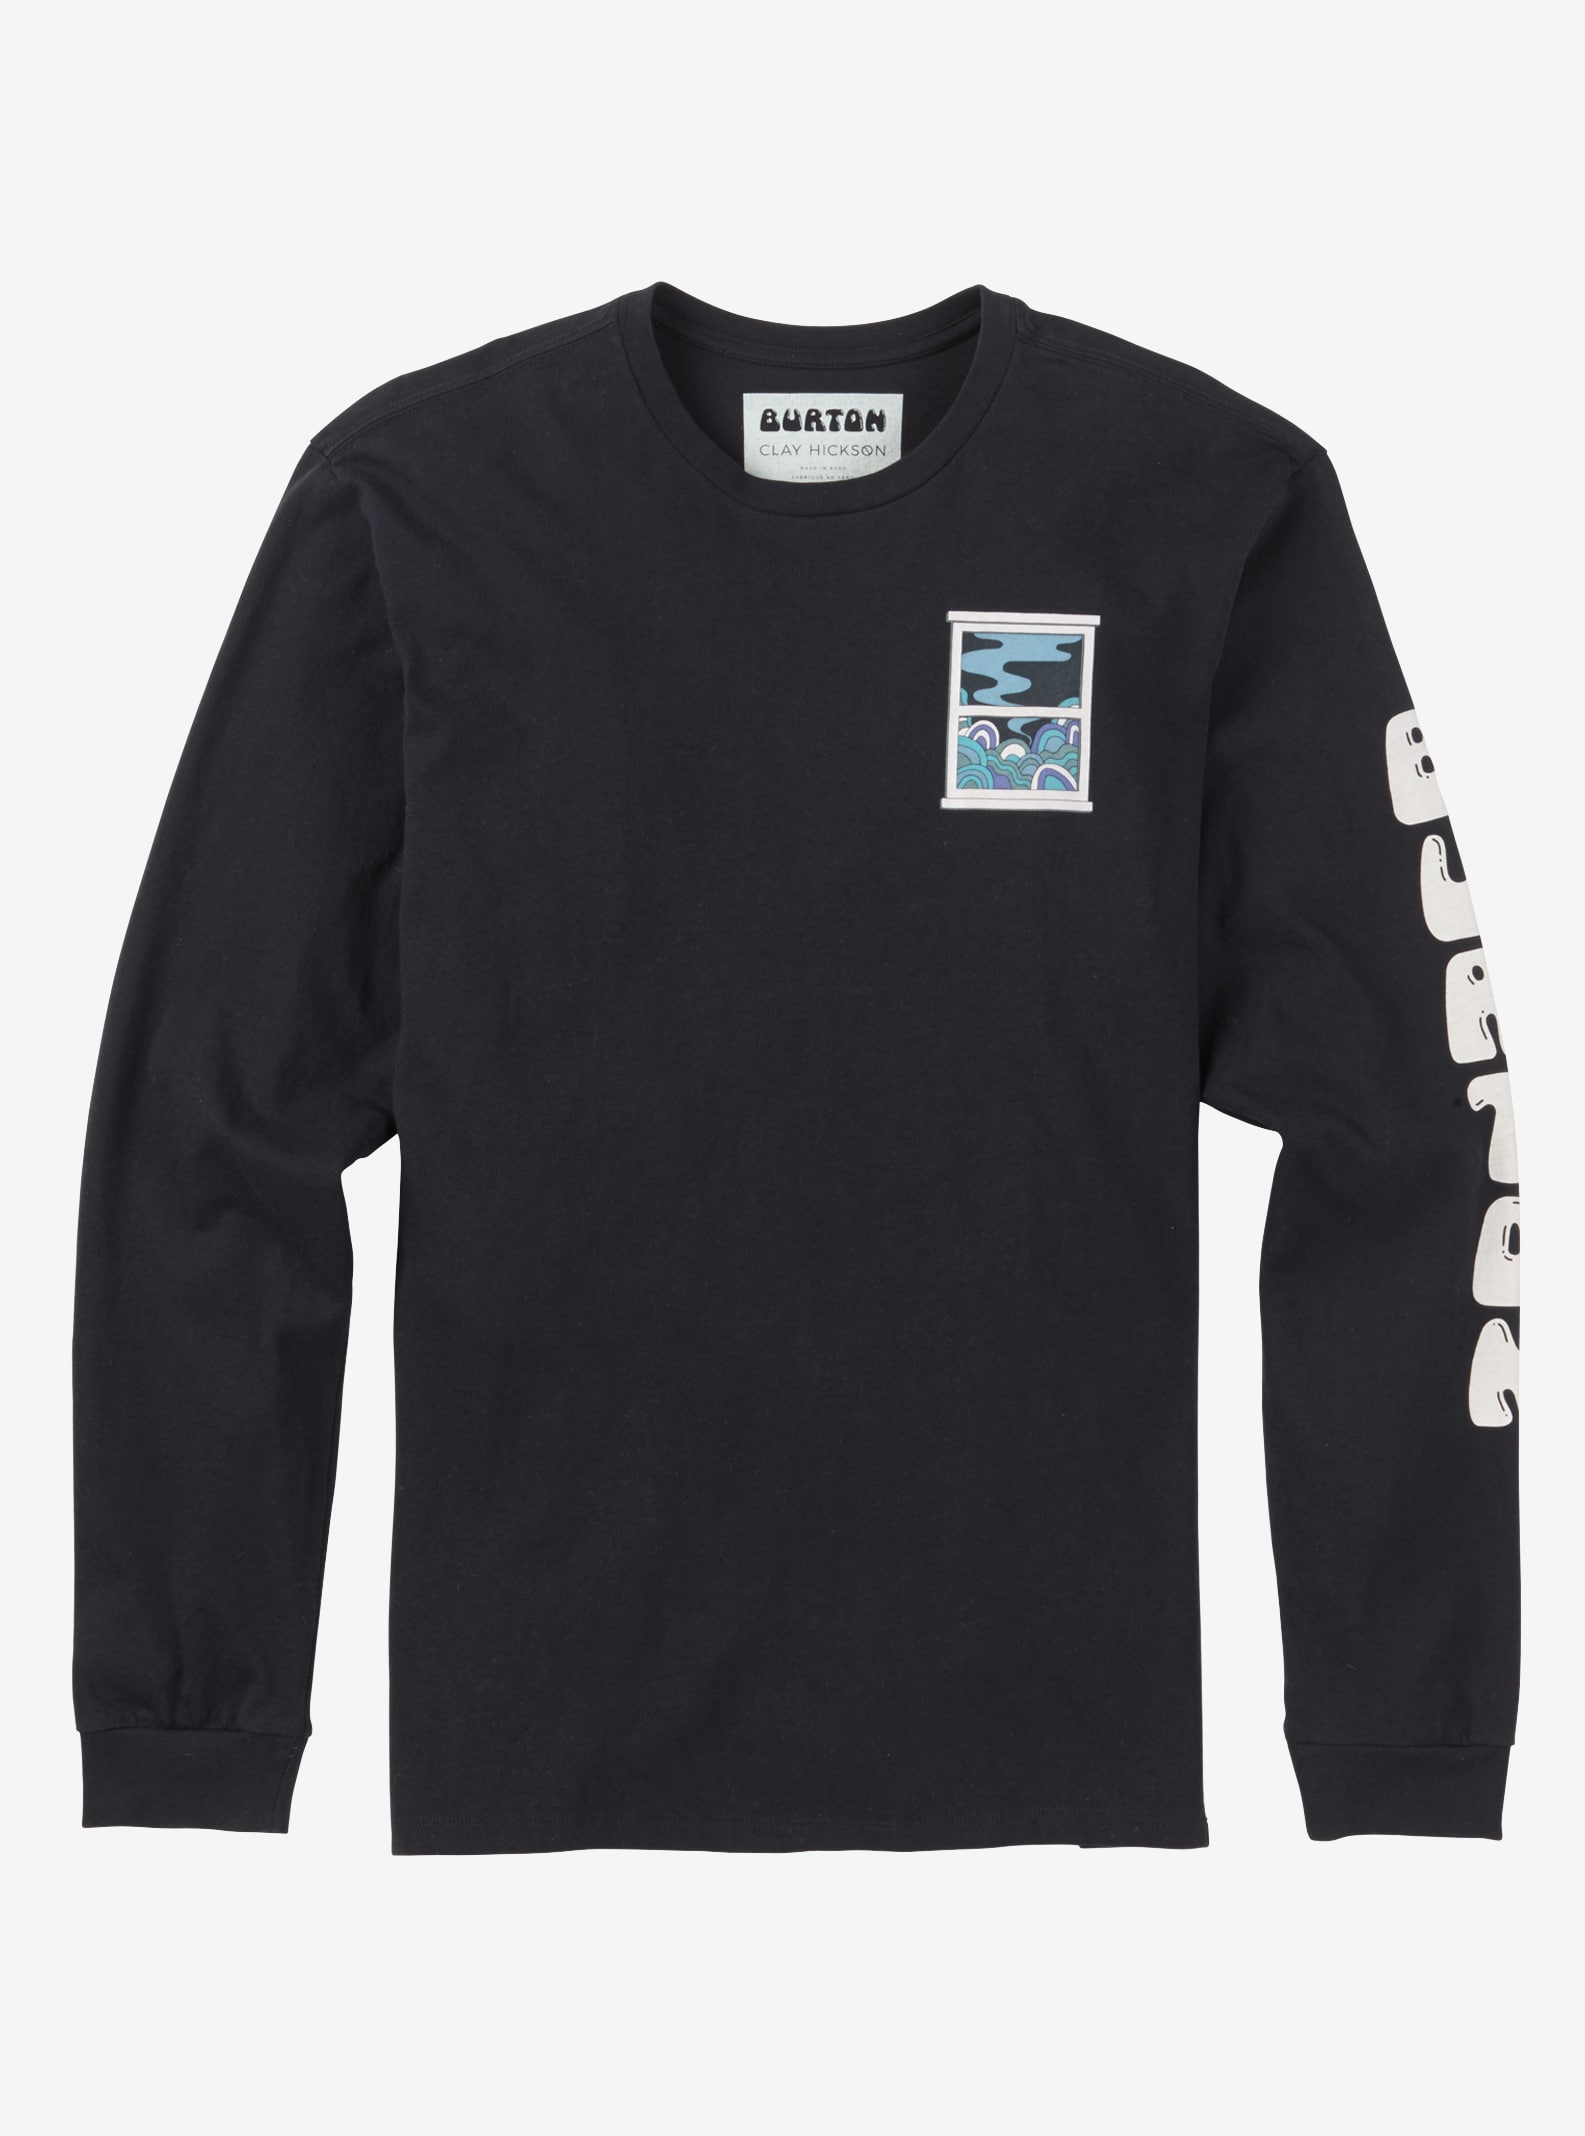 Men's Burton Newport Long Sleeve T Shirt shown in True Black